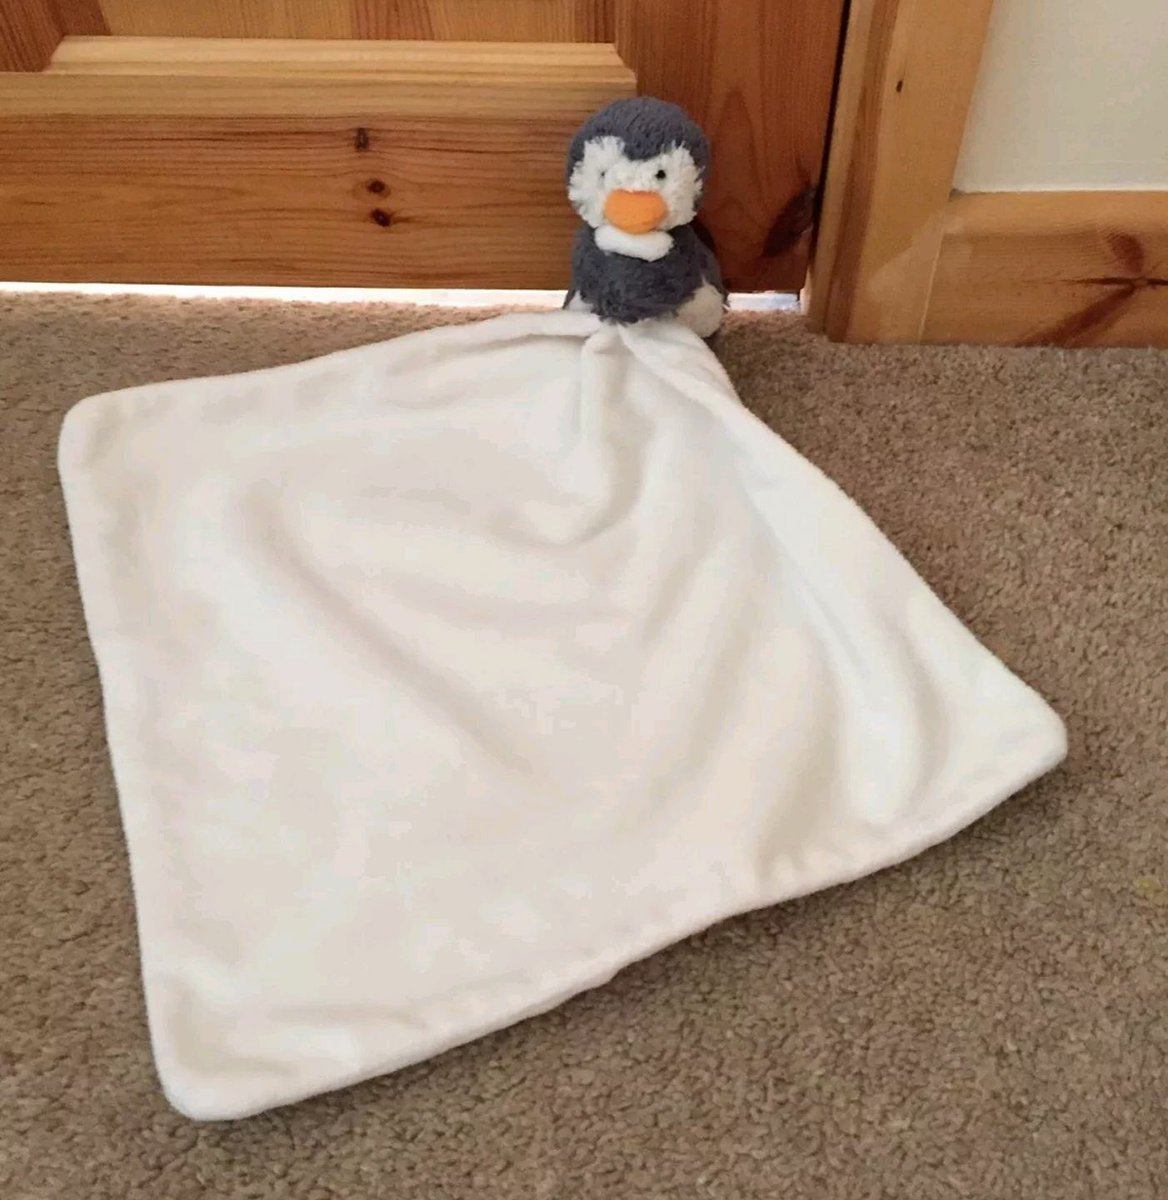 We need to find Mr Penguin.   He was dropped yesterday around Gallows Street #Dromore https://t.co/r1QLPJJWmU